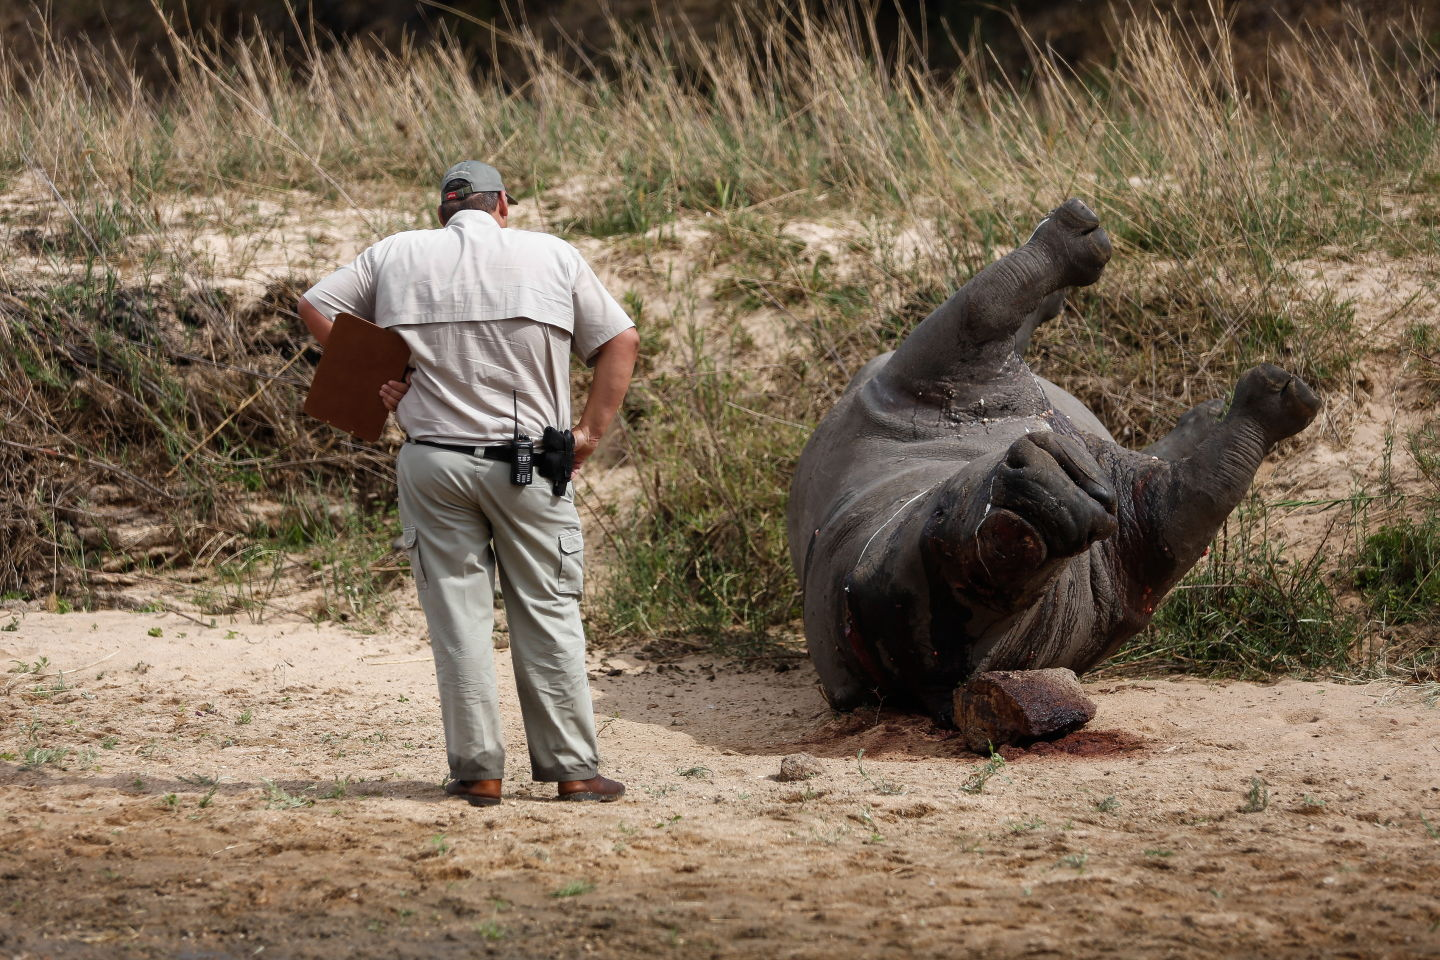 Crime scene investigator examines a poached rhino carcass in September 2014 in the Kruger National Park, South Africa.